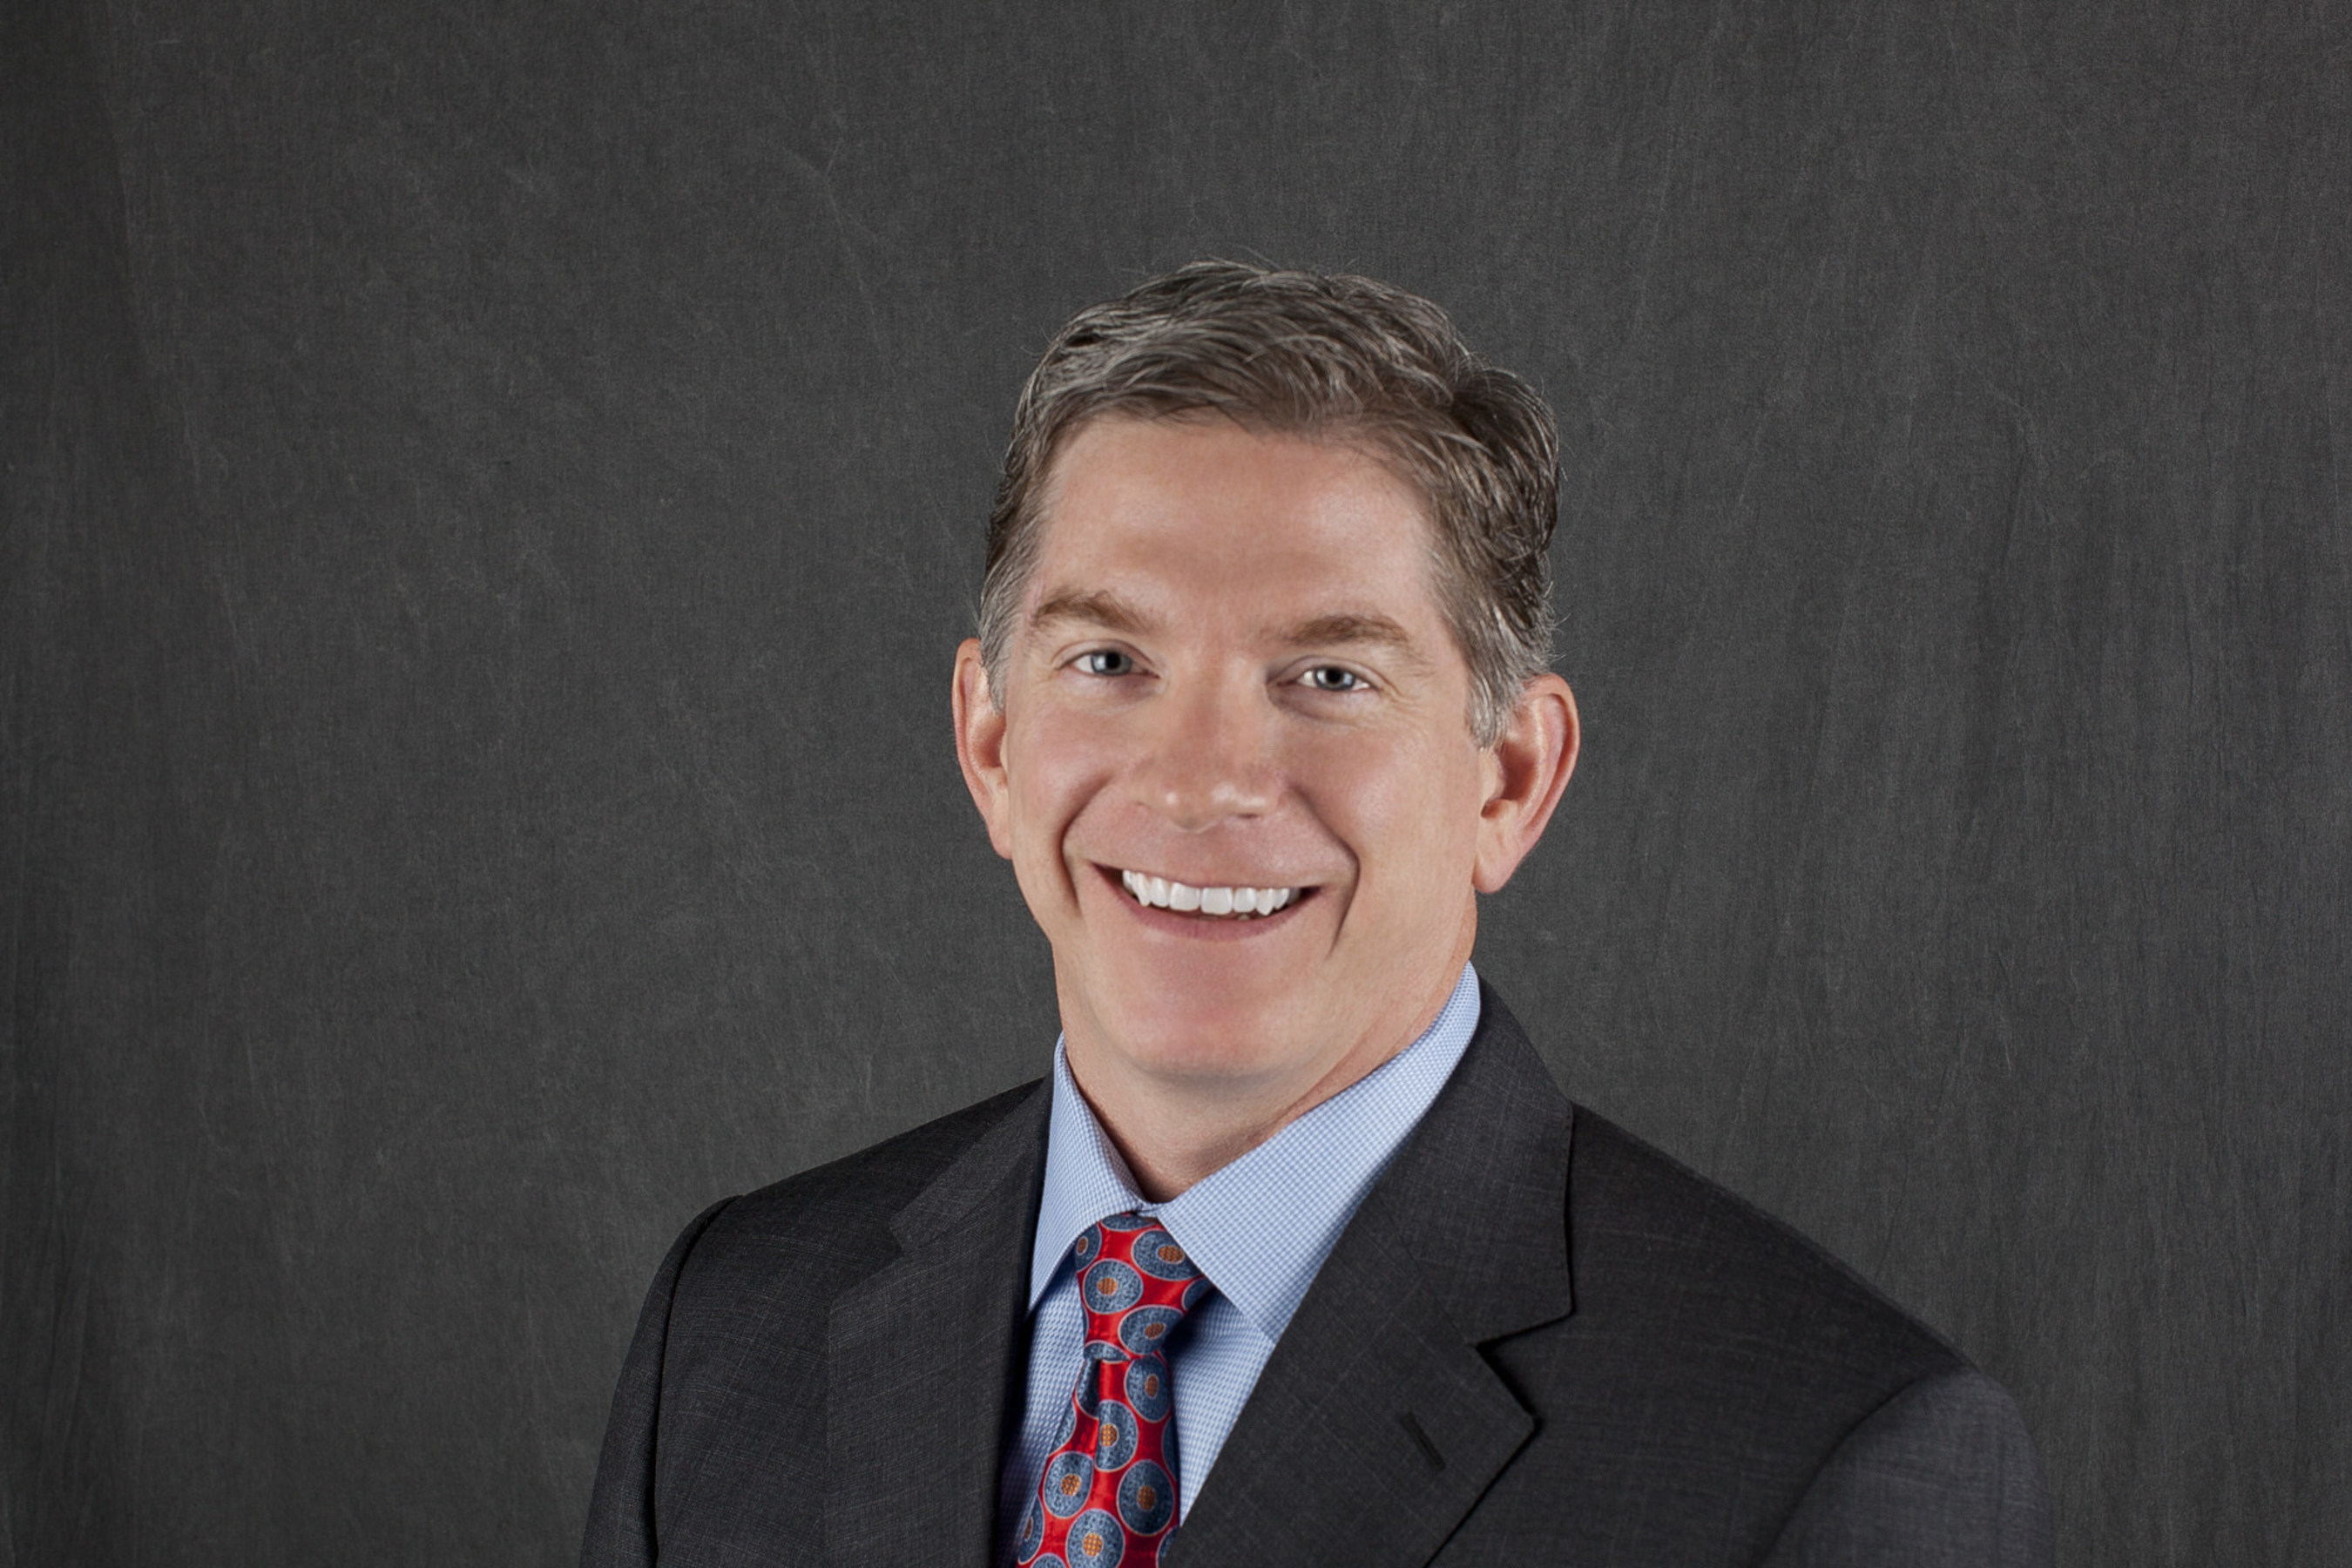 Mary Kay Inc., a top beauty brand and direct seller in more than 35 markets around the world, announces the appointment of Nathan Moore as President of the Mary Kay North America Region at the company's global headquarters in Addison, Texas.